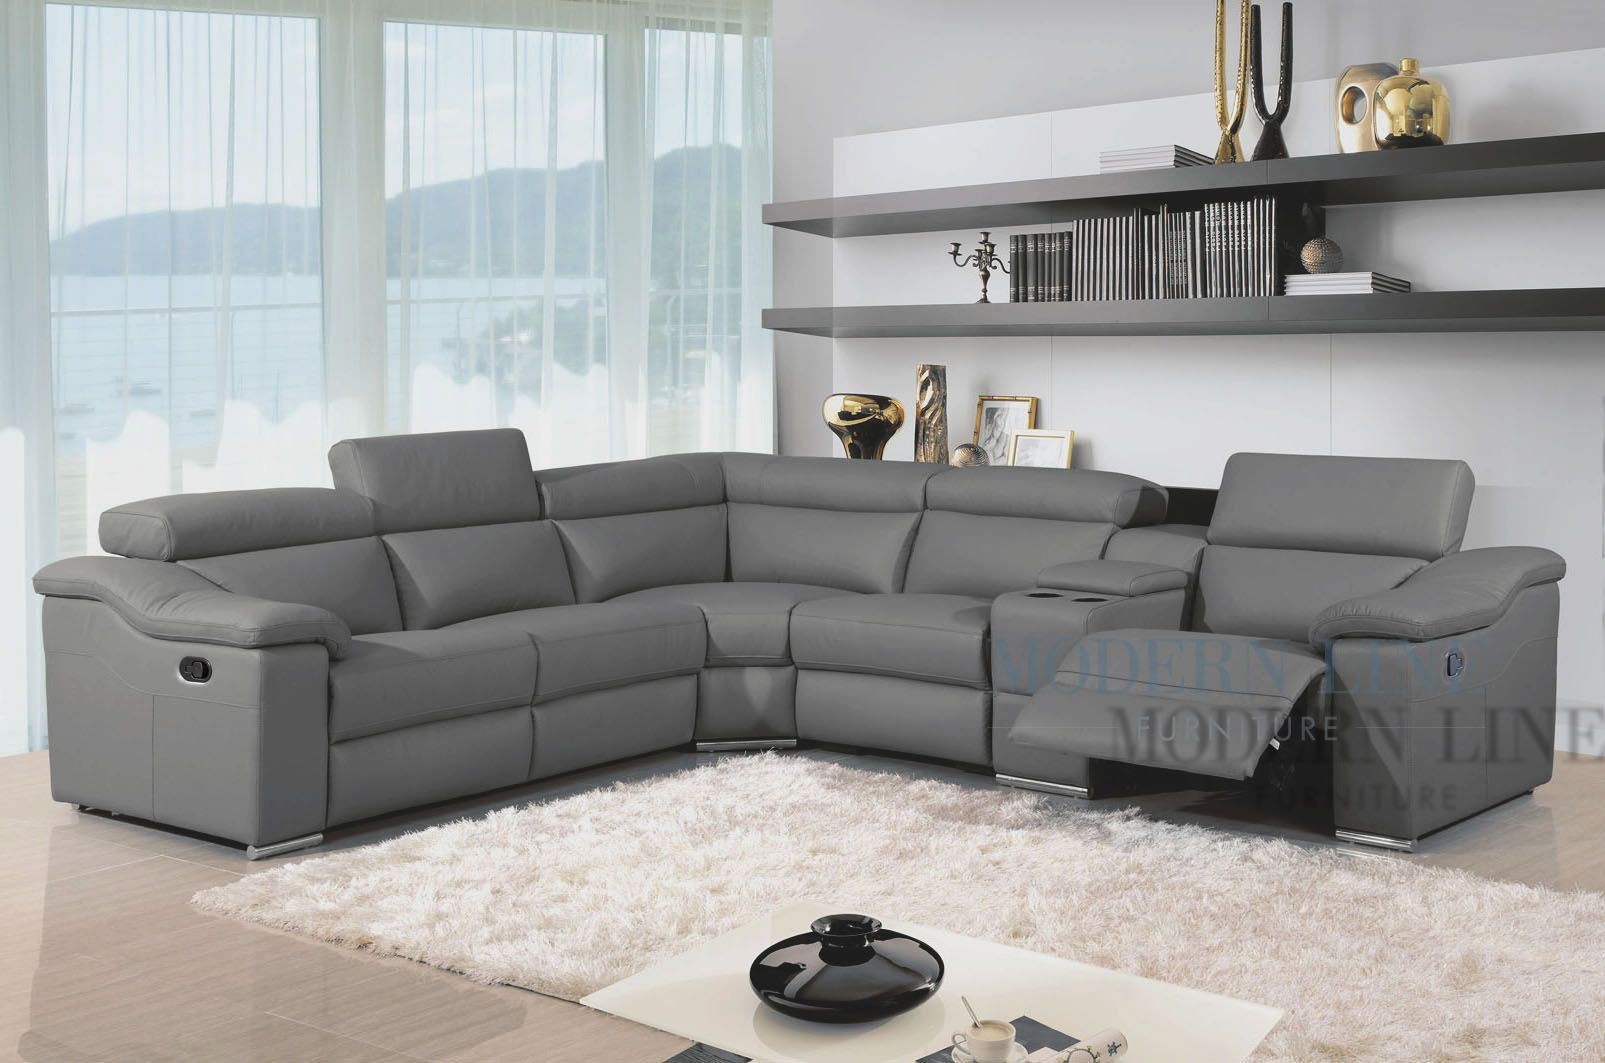 awesome Great Charcoal Grey Sectional Sofa 29 About Remodel Home Design Ideas with Charcoal Grey Sectional : leather sectionals recliners - islam-shia.org